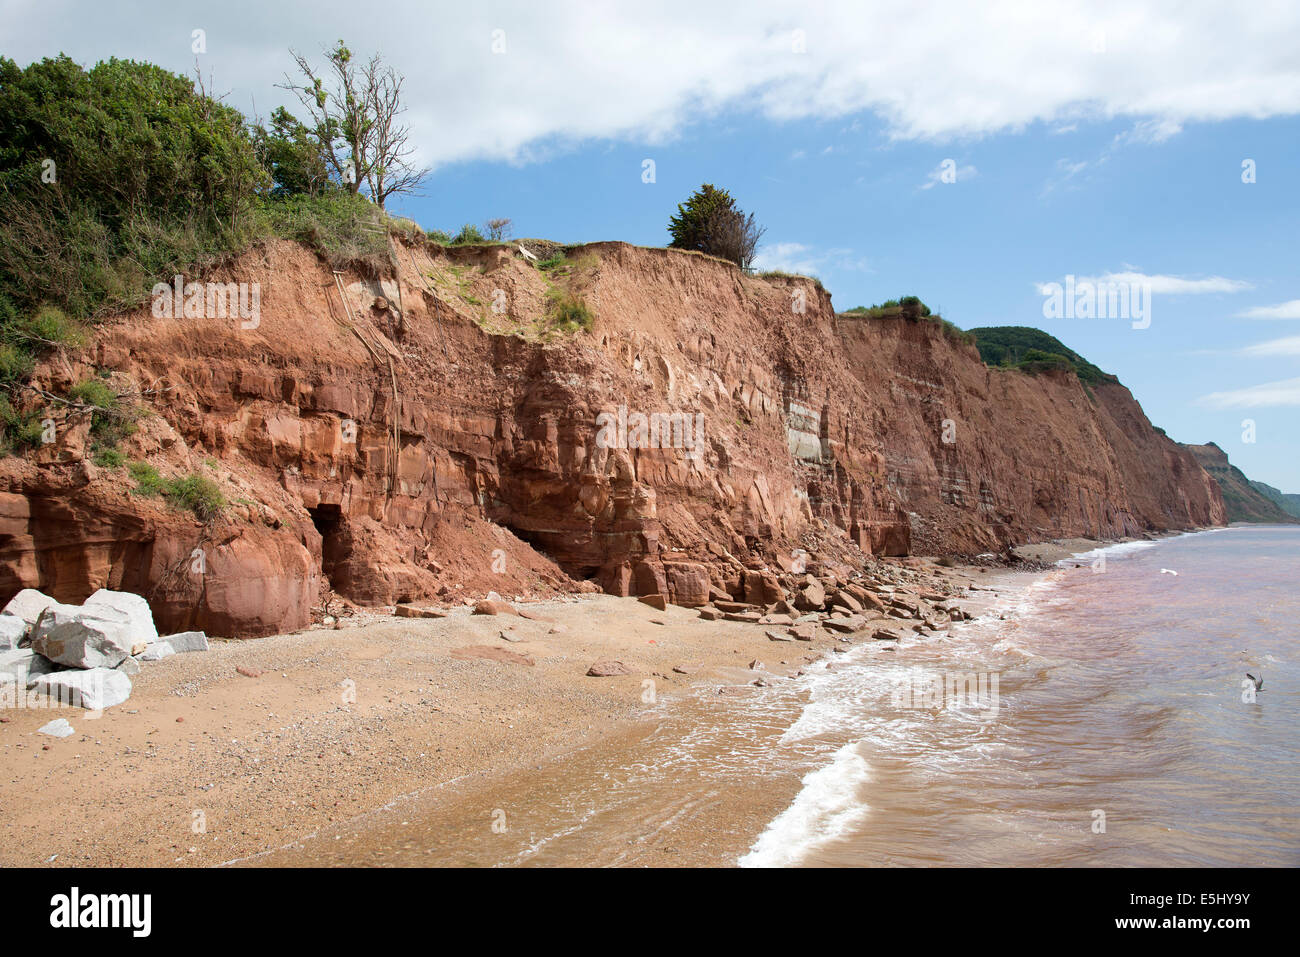 Cliff fall on The Jurassic coast at Sidmouth Devon England UK Rock and earth sliding into the sea - Stock Image